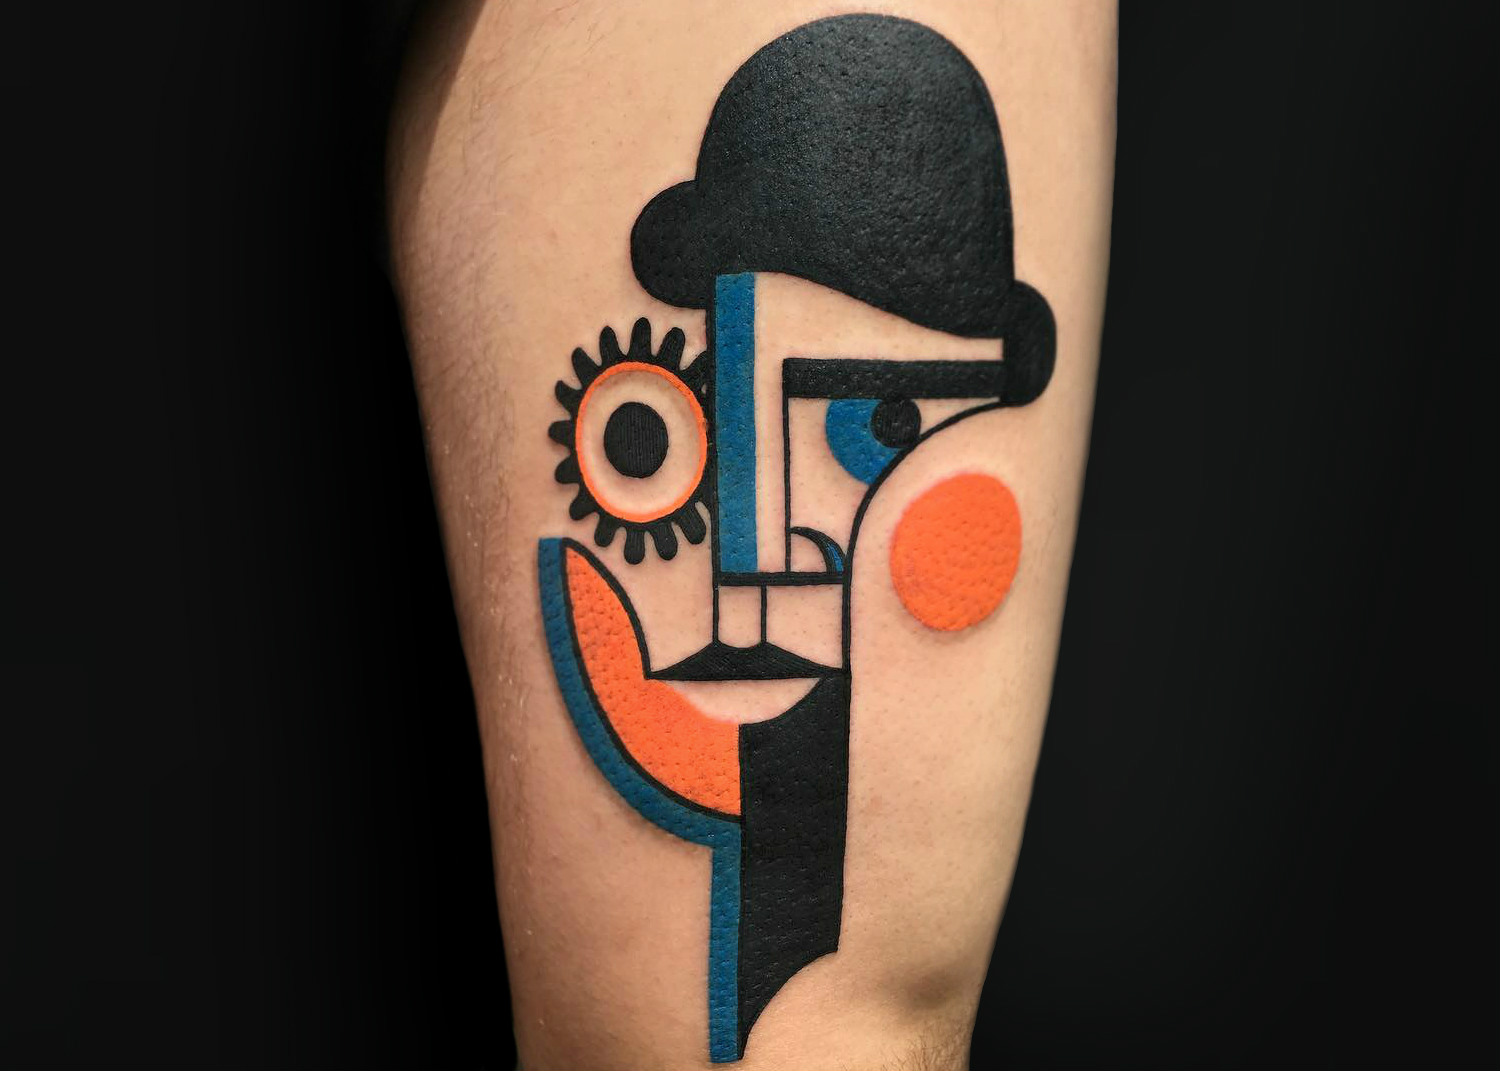 Clockwork Orange tattoo design by Mike Boyd